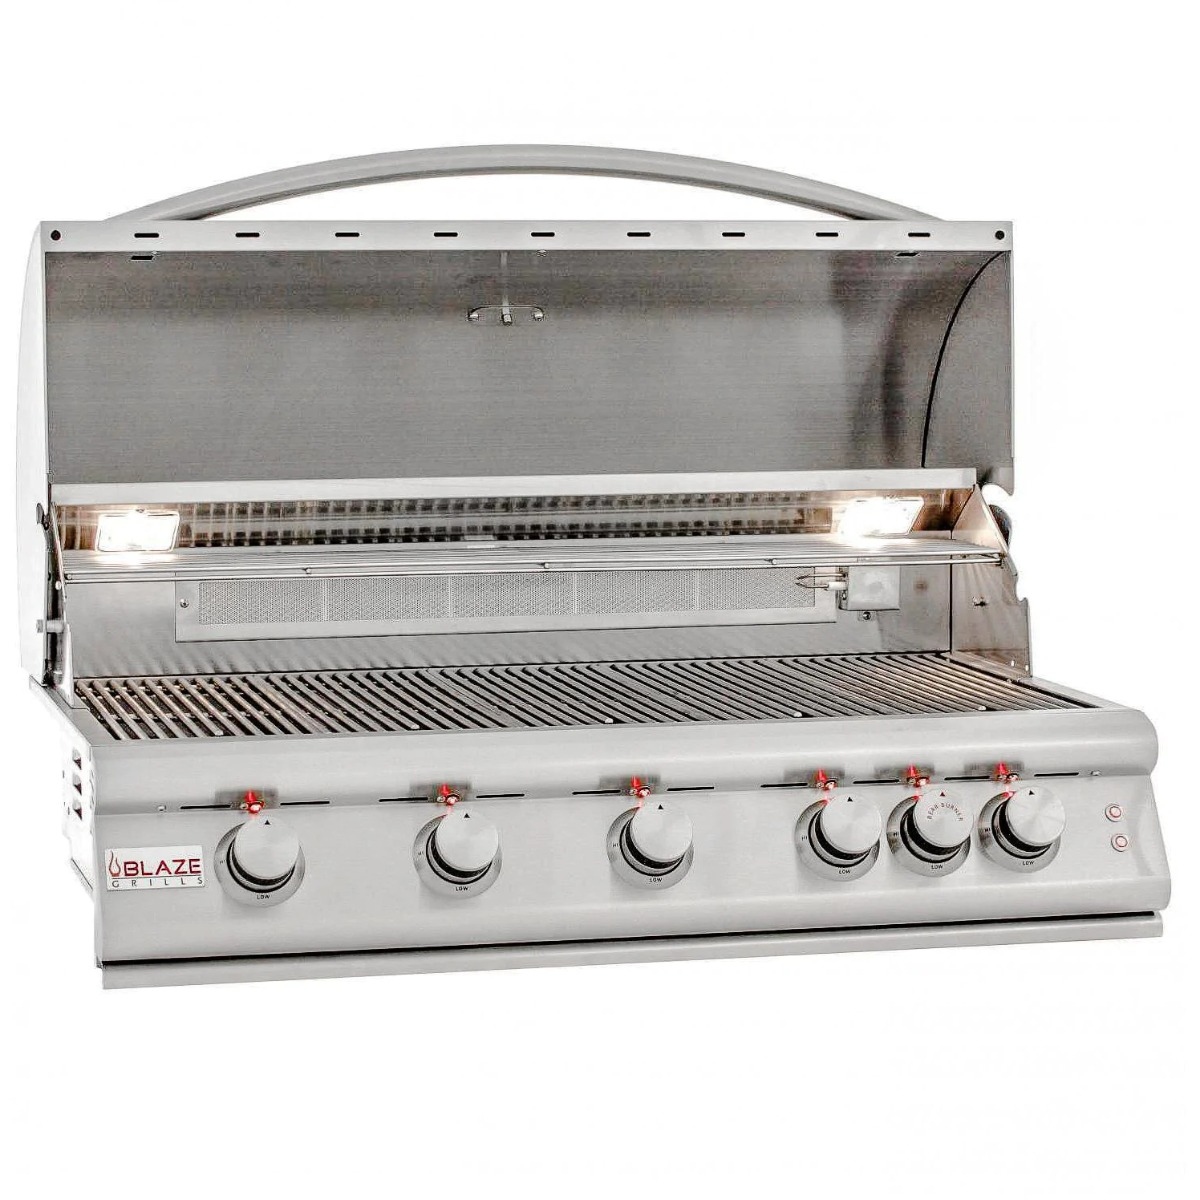 Blaze Premium LTE 40-Inch 5-Burner Built-In Natural Gas Grill with Rotisserie, Rear Infrared Burner & Grill Lights - blz-5lte2-ng-rt